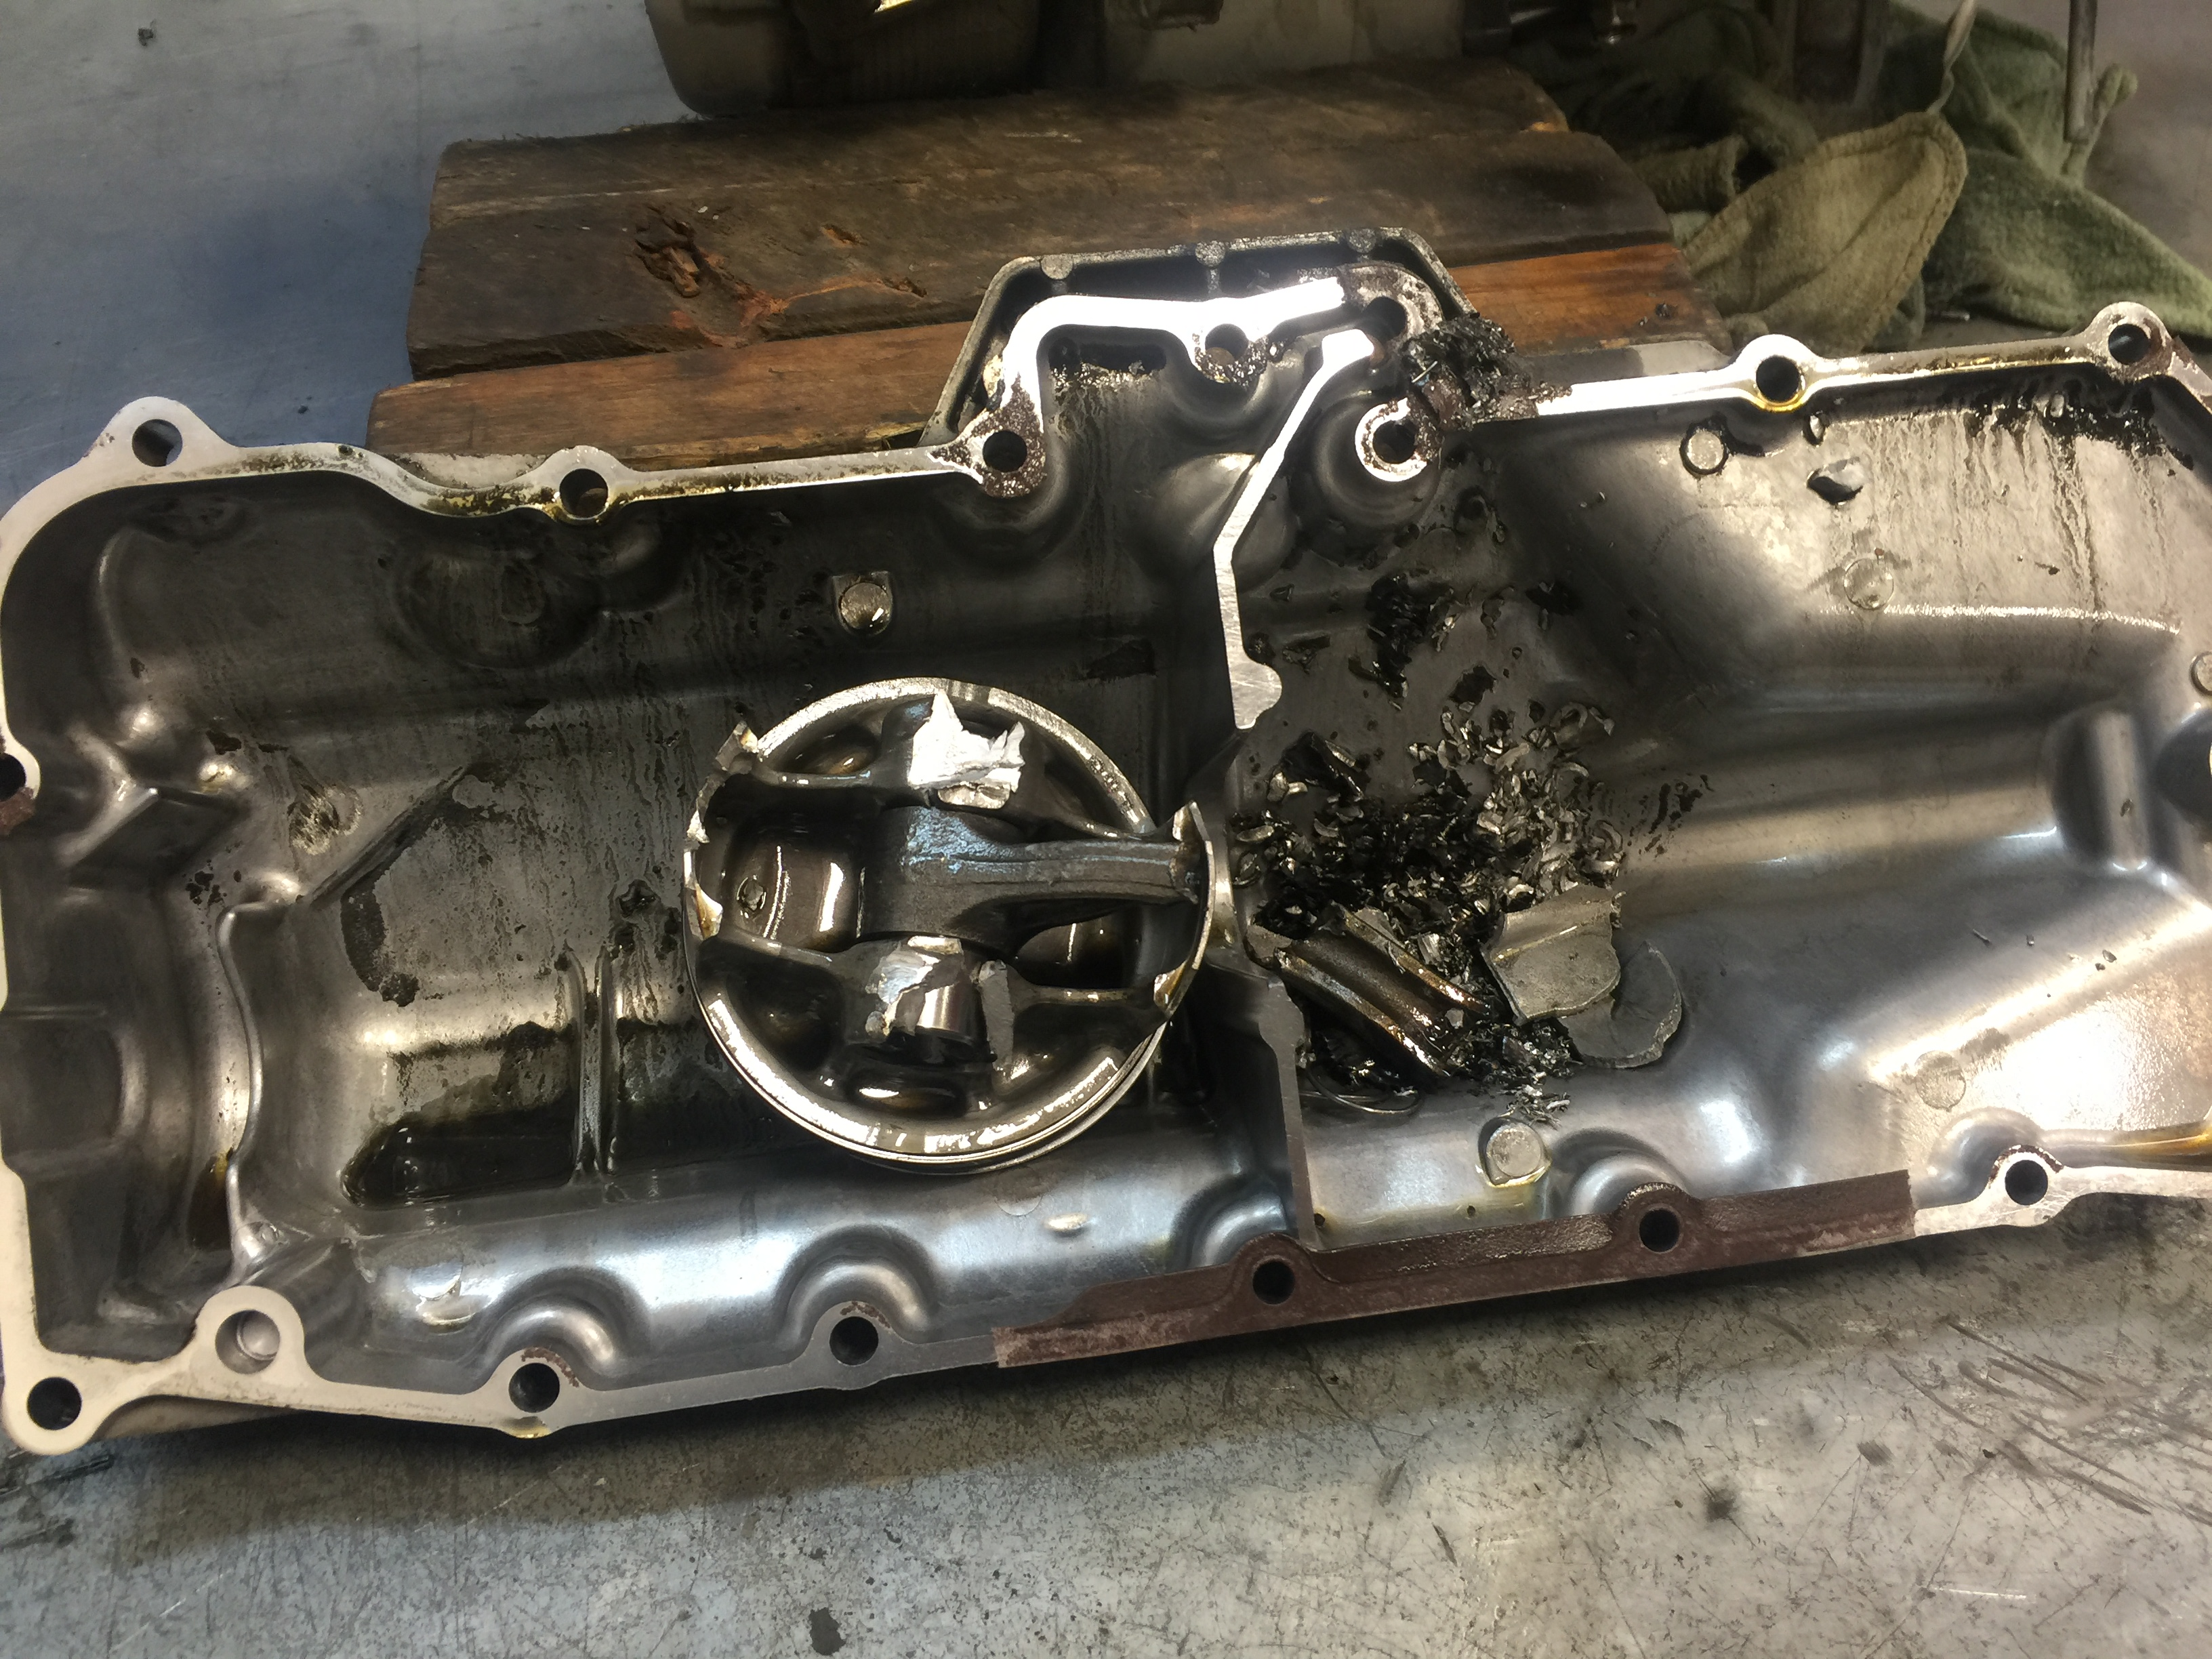 Blown YXZ engine at 15 hours | Yamaha YXZ Forums